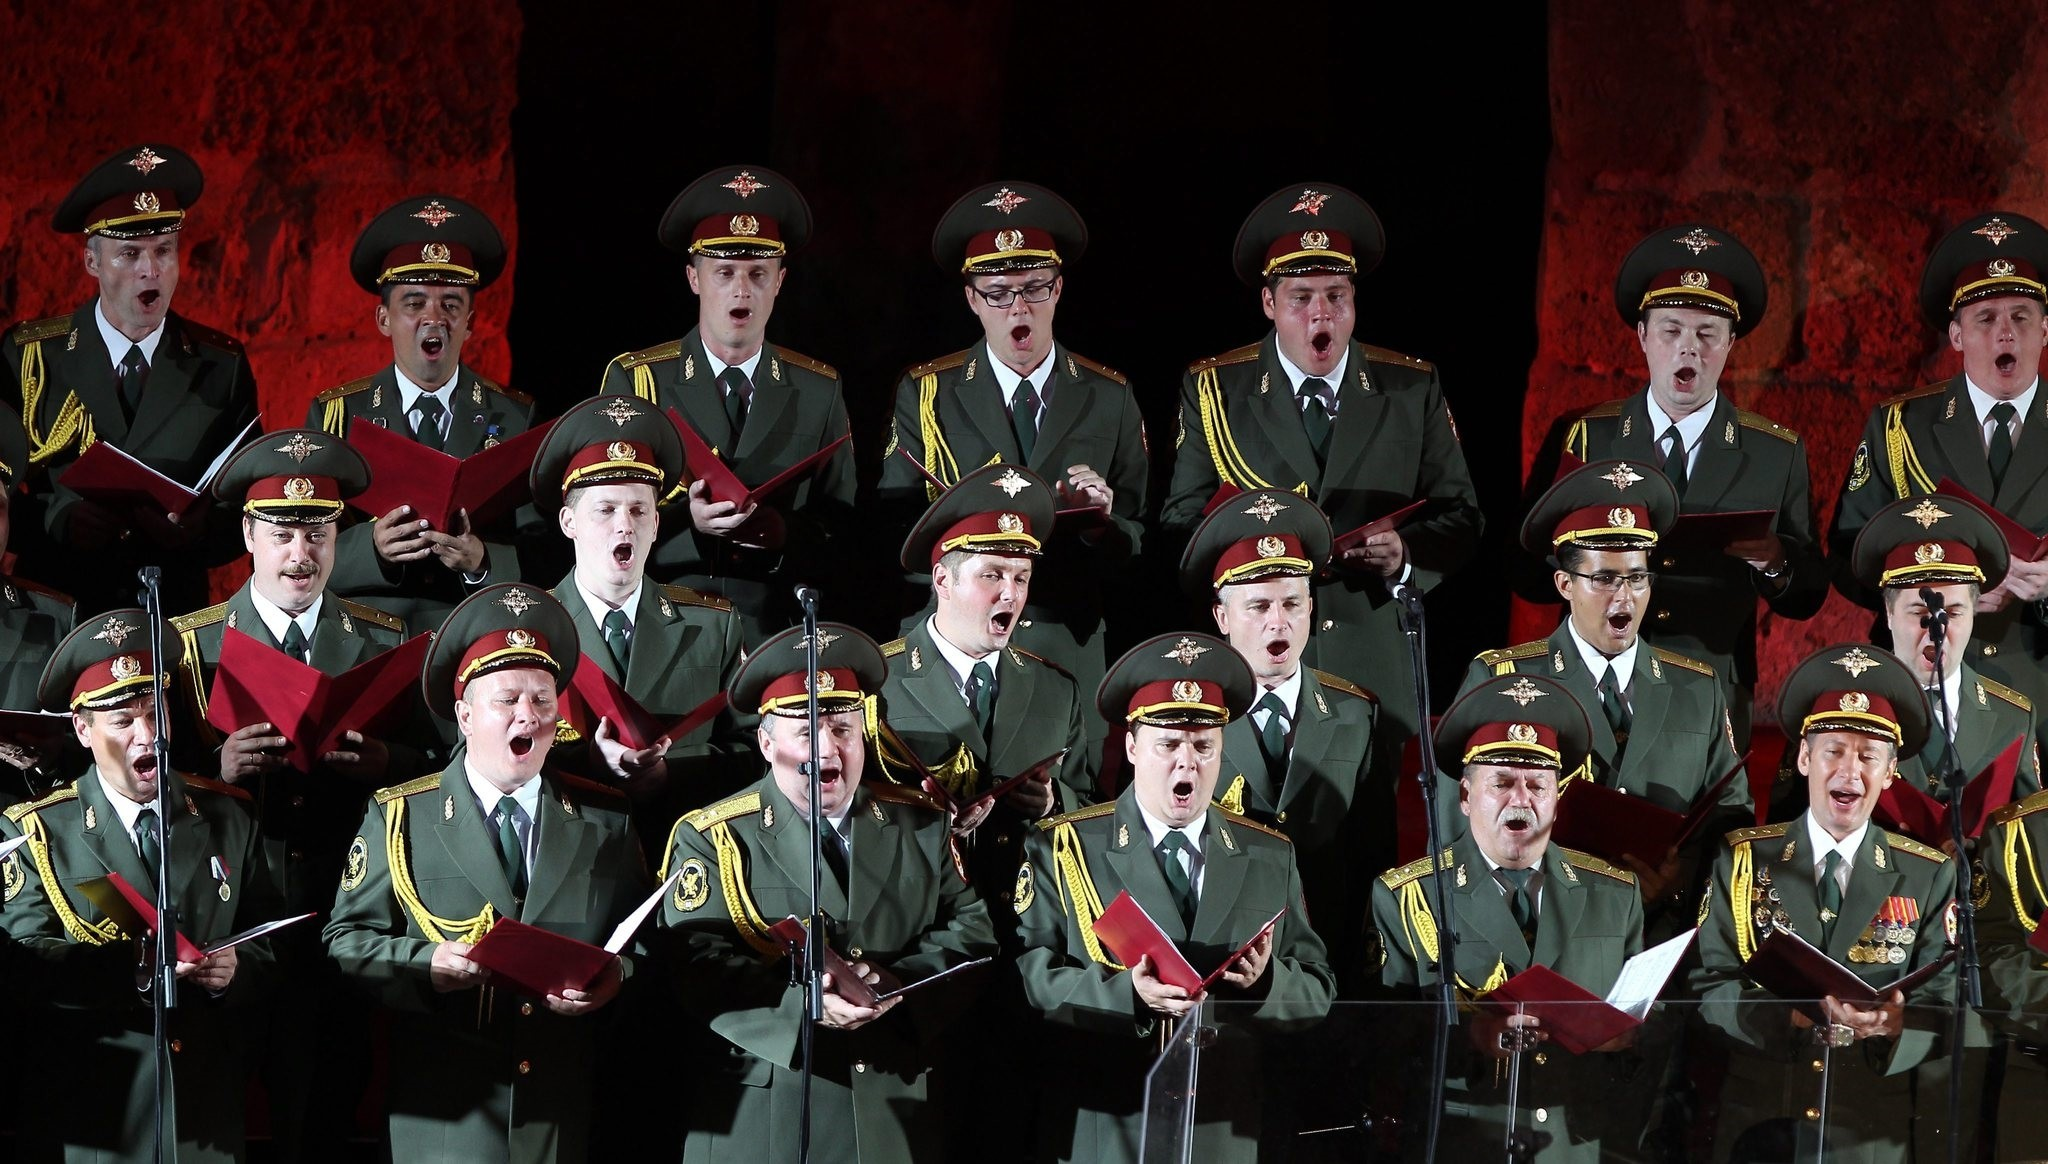 A file picture dated 12 July 2013 shows members of the Russian Red Army Choir performing at the Roman theater of Carthage during the International Festival of Carthage in Tunis. (EPA Photo)